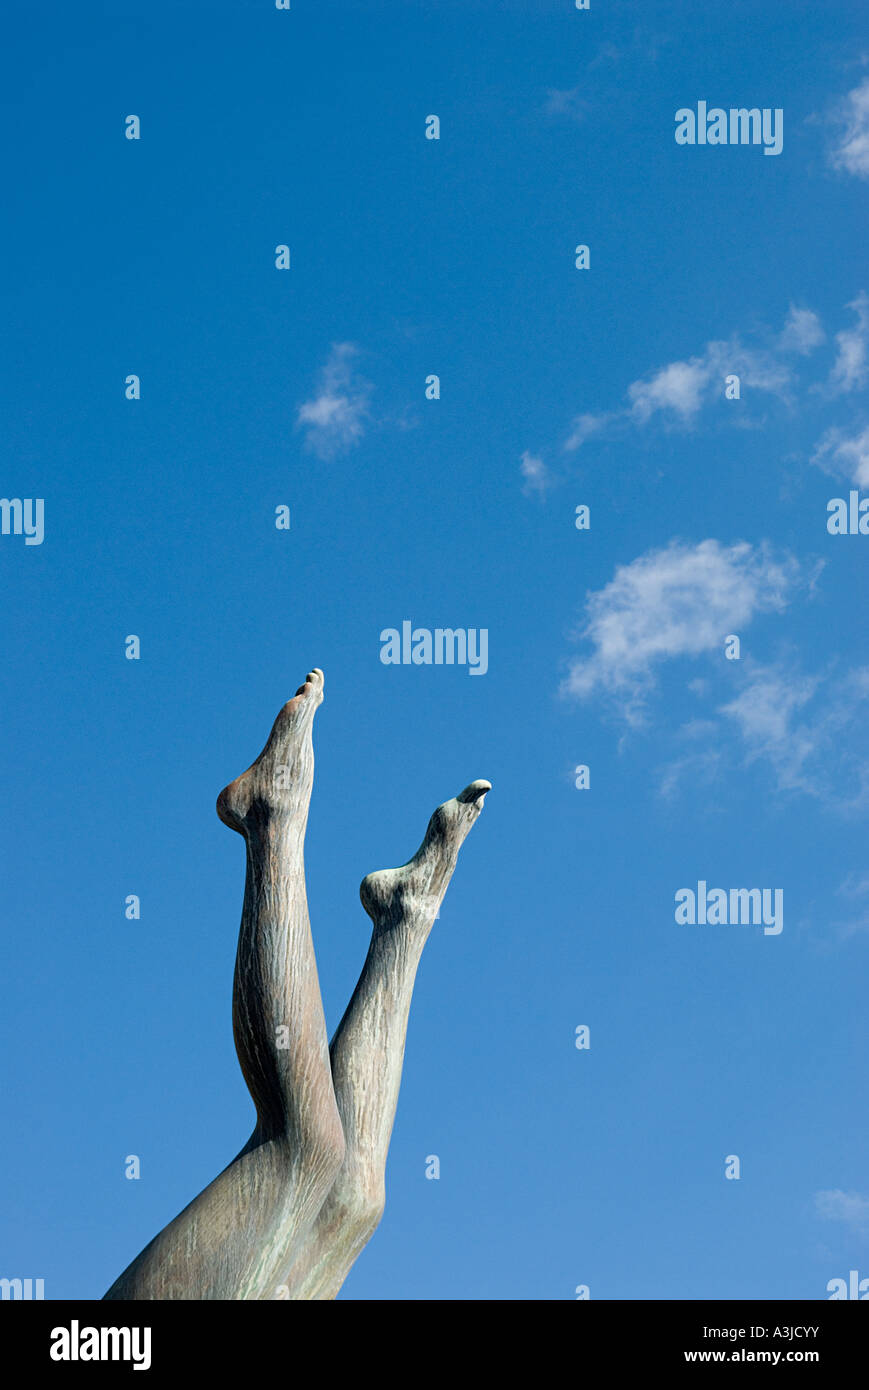 Legs of a statue - Stock Image